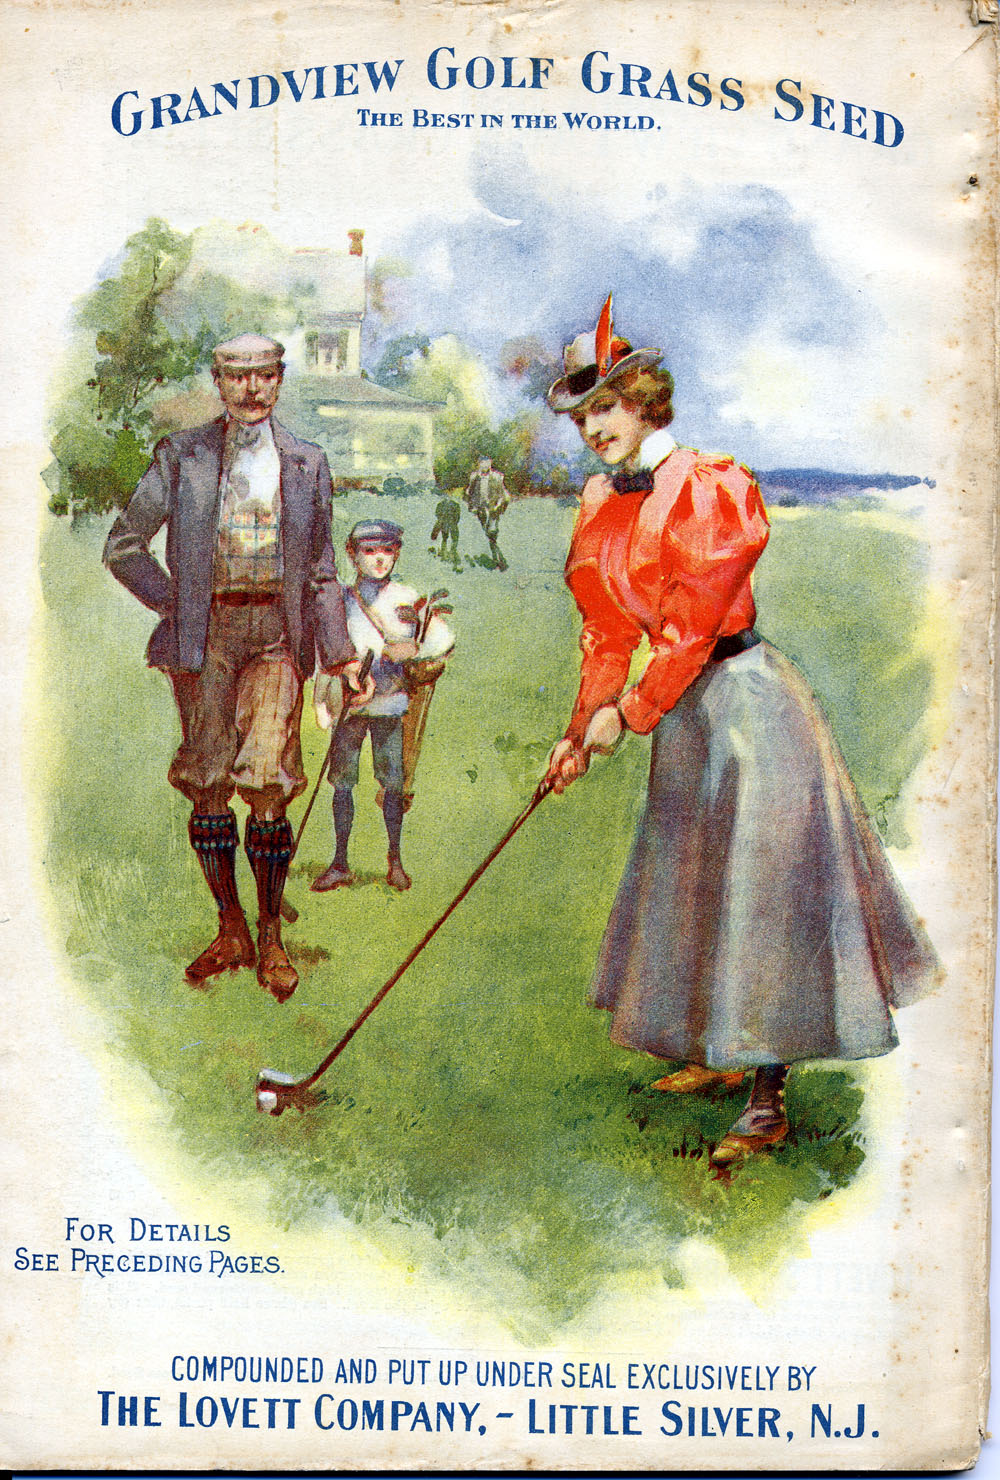 The Lovett Co., Lovett's Guide (1898), Little Silver, NJ